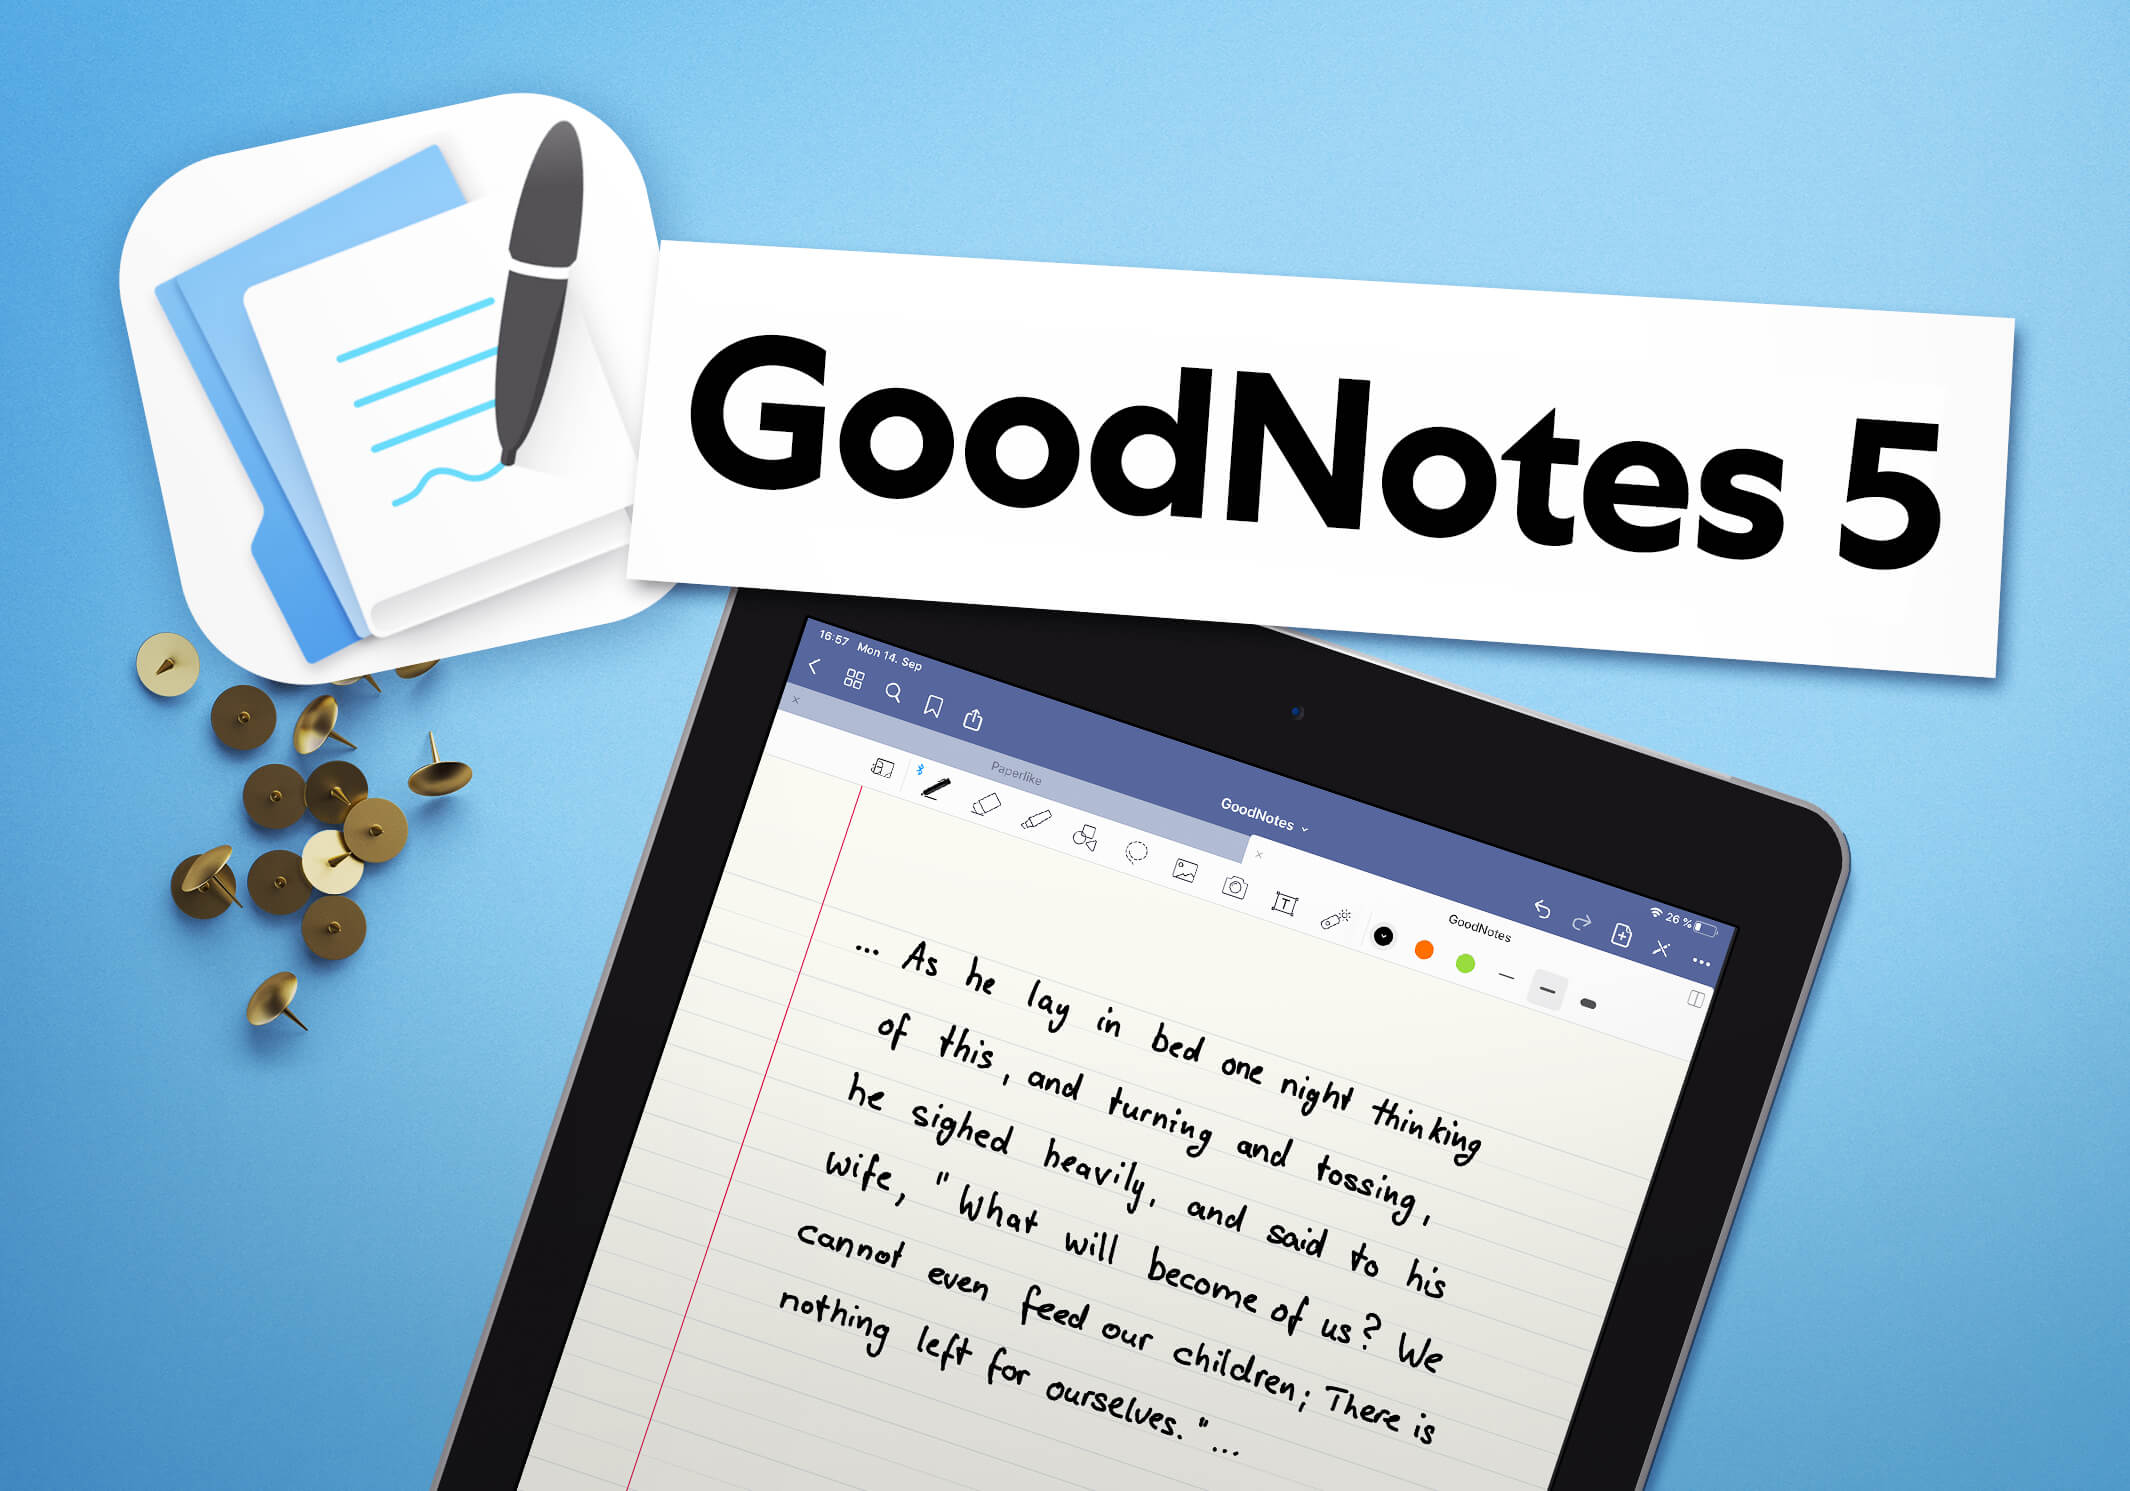 A title card for the GoodNotes 5 comparison section.